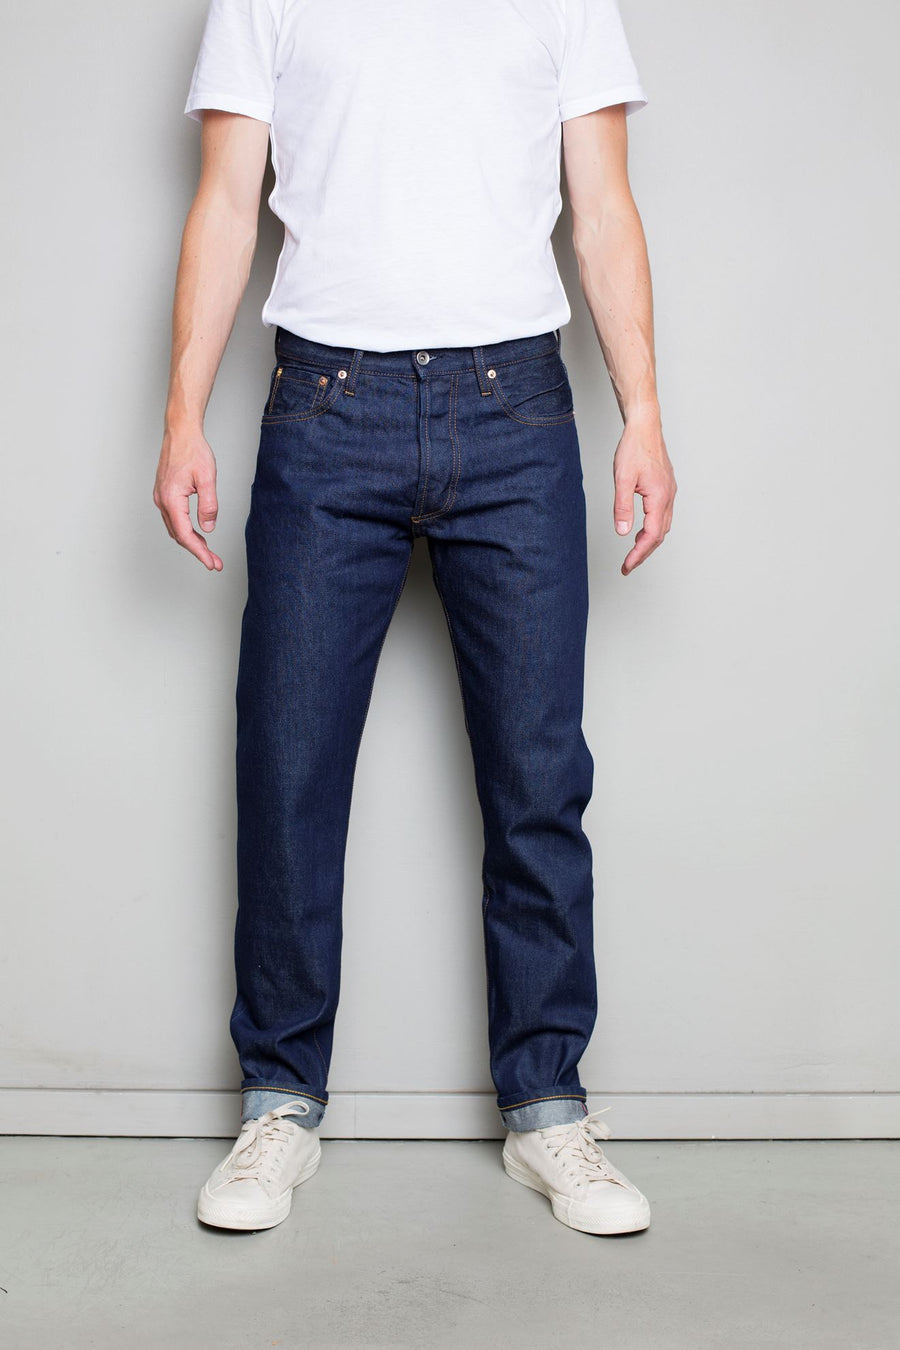 C.O.F. Studio M7 Tapered Selvedge Denim Jean - Rinsed